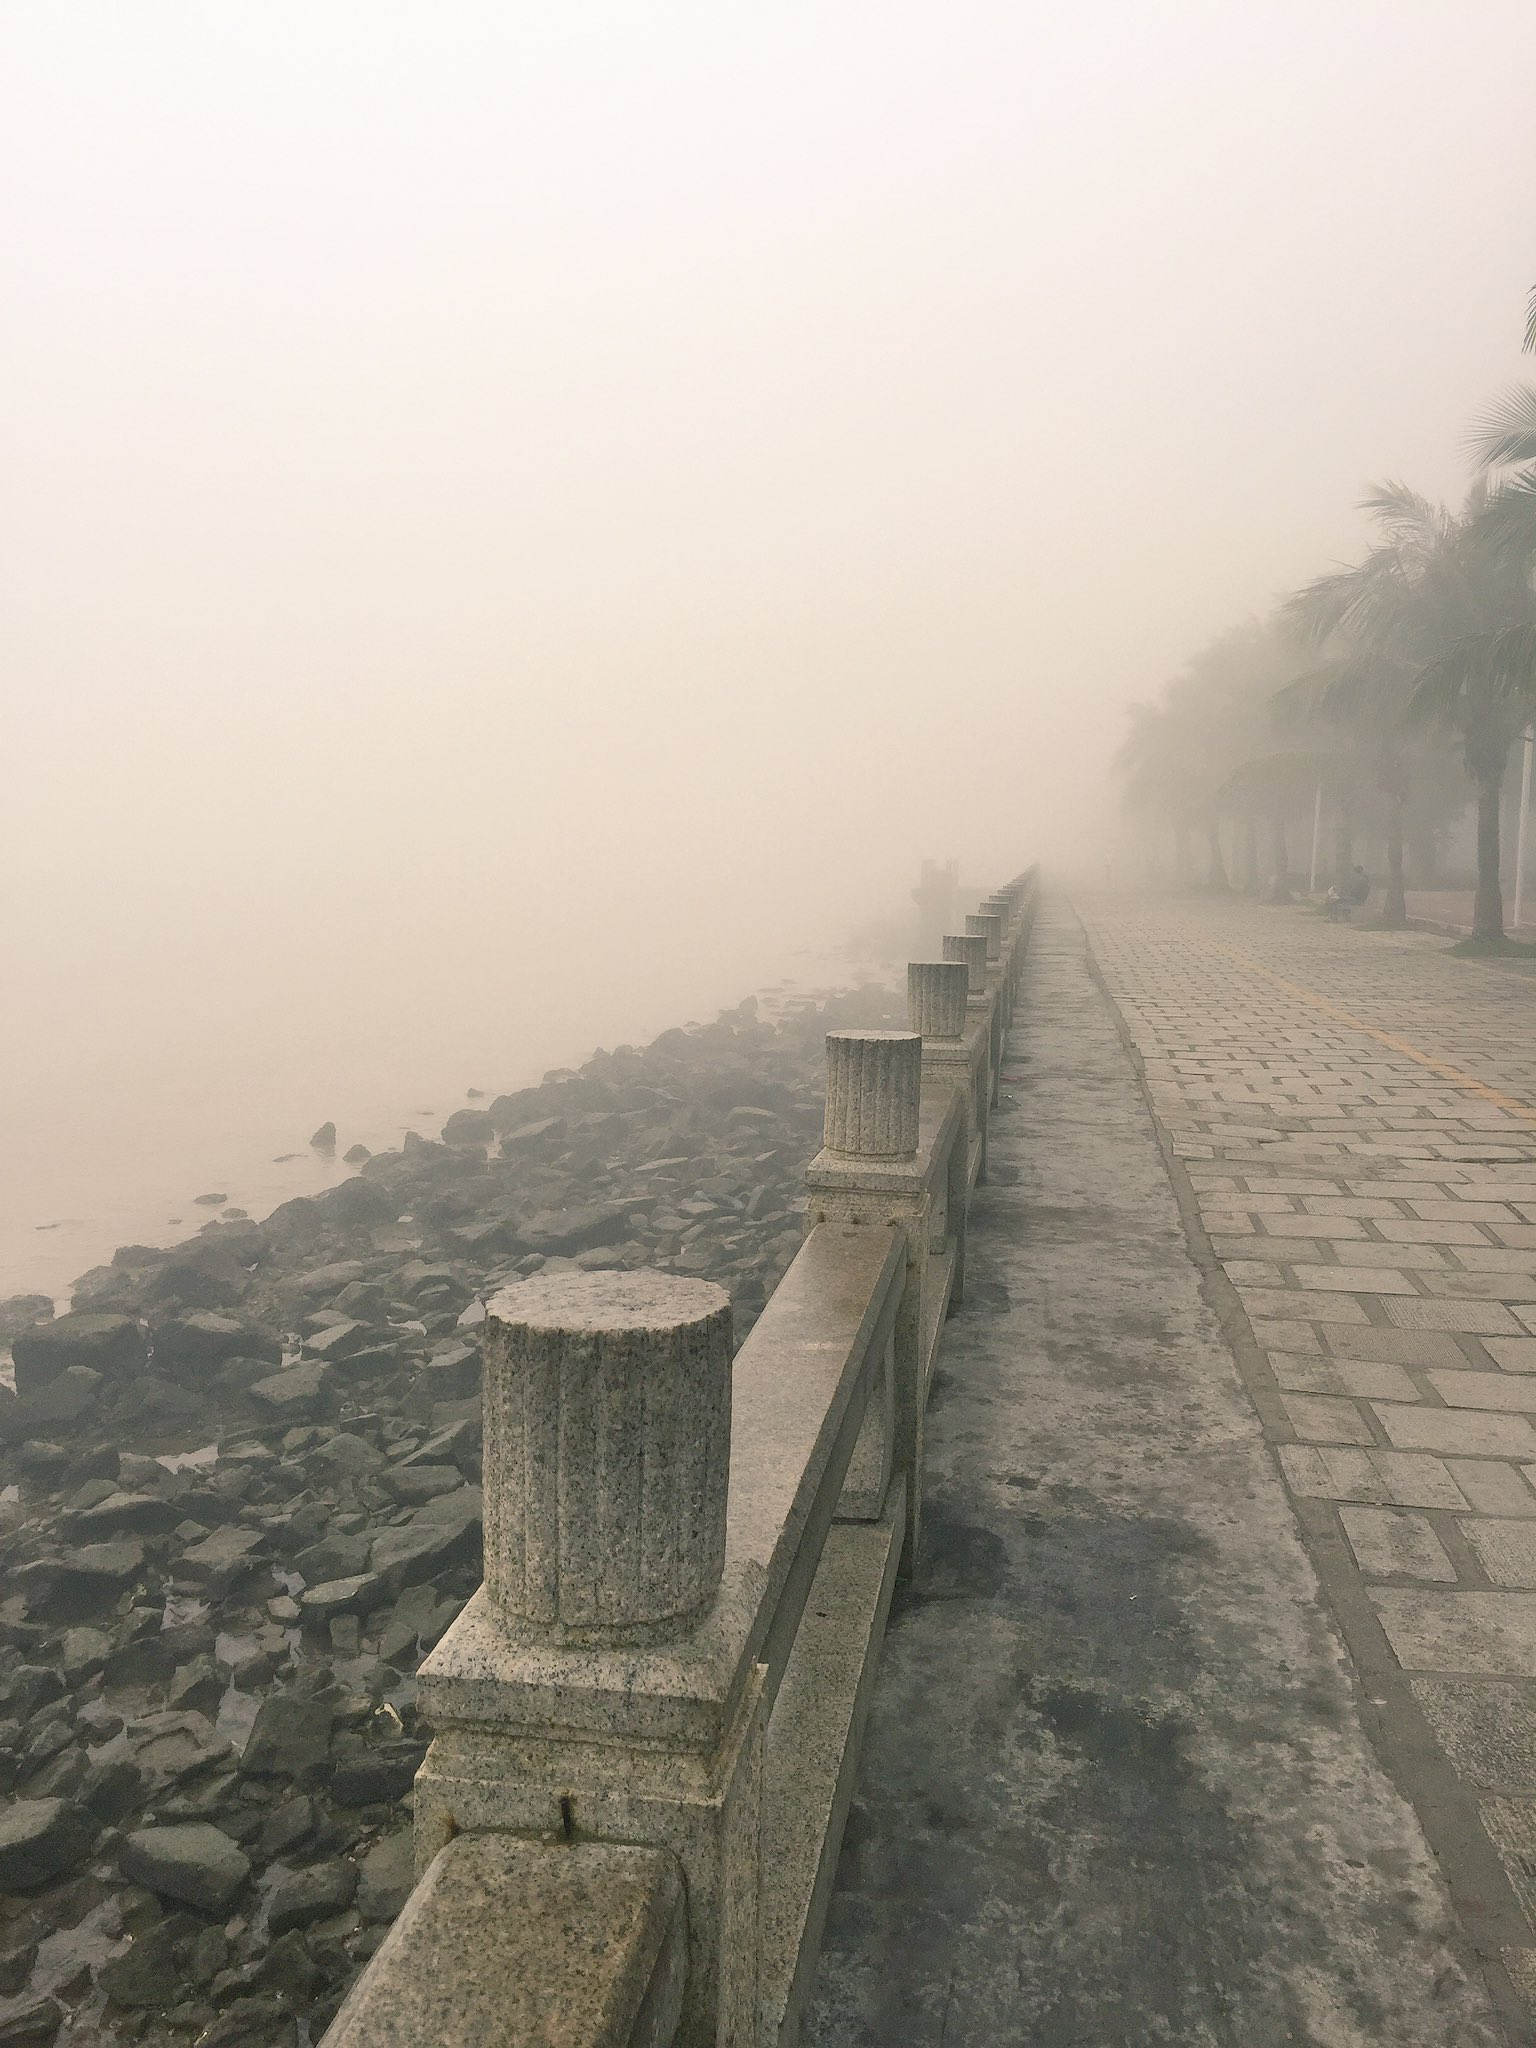 Zhuhai is enveloped by sea mist this morning. Looking towards Macau from Qinglu Nan Lu (Lovers Road) in Gongbei. #cahht17 https://t.co/JvIrG6BCFD